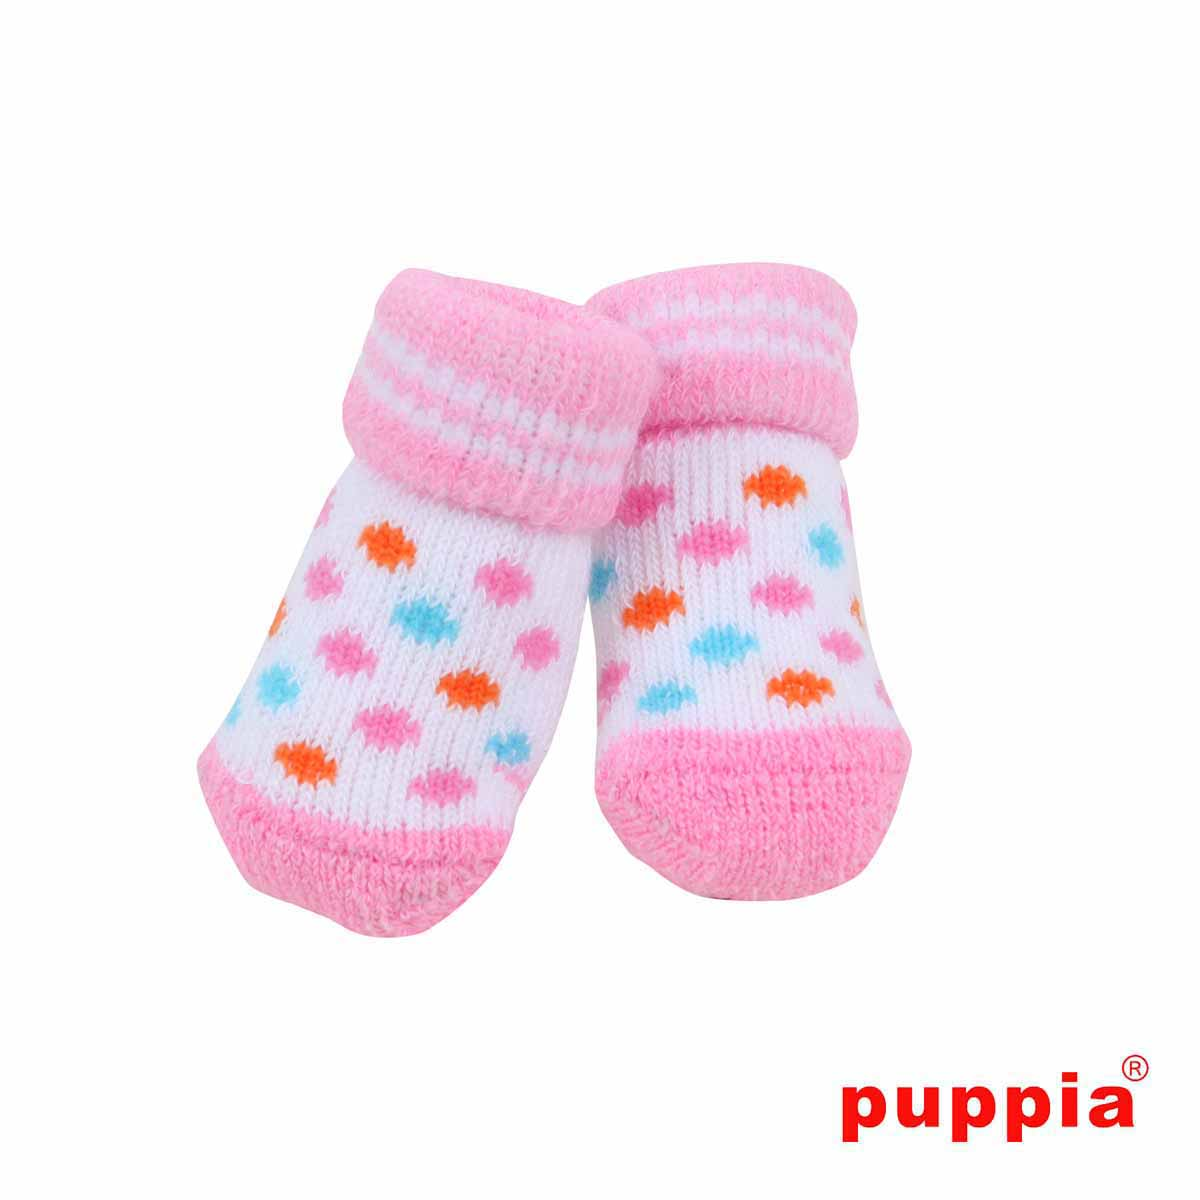 Polka Dot Dog Socks by Puppia - Pink